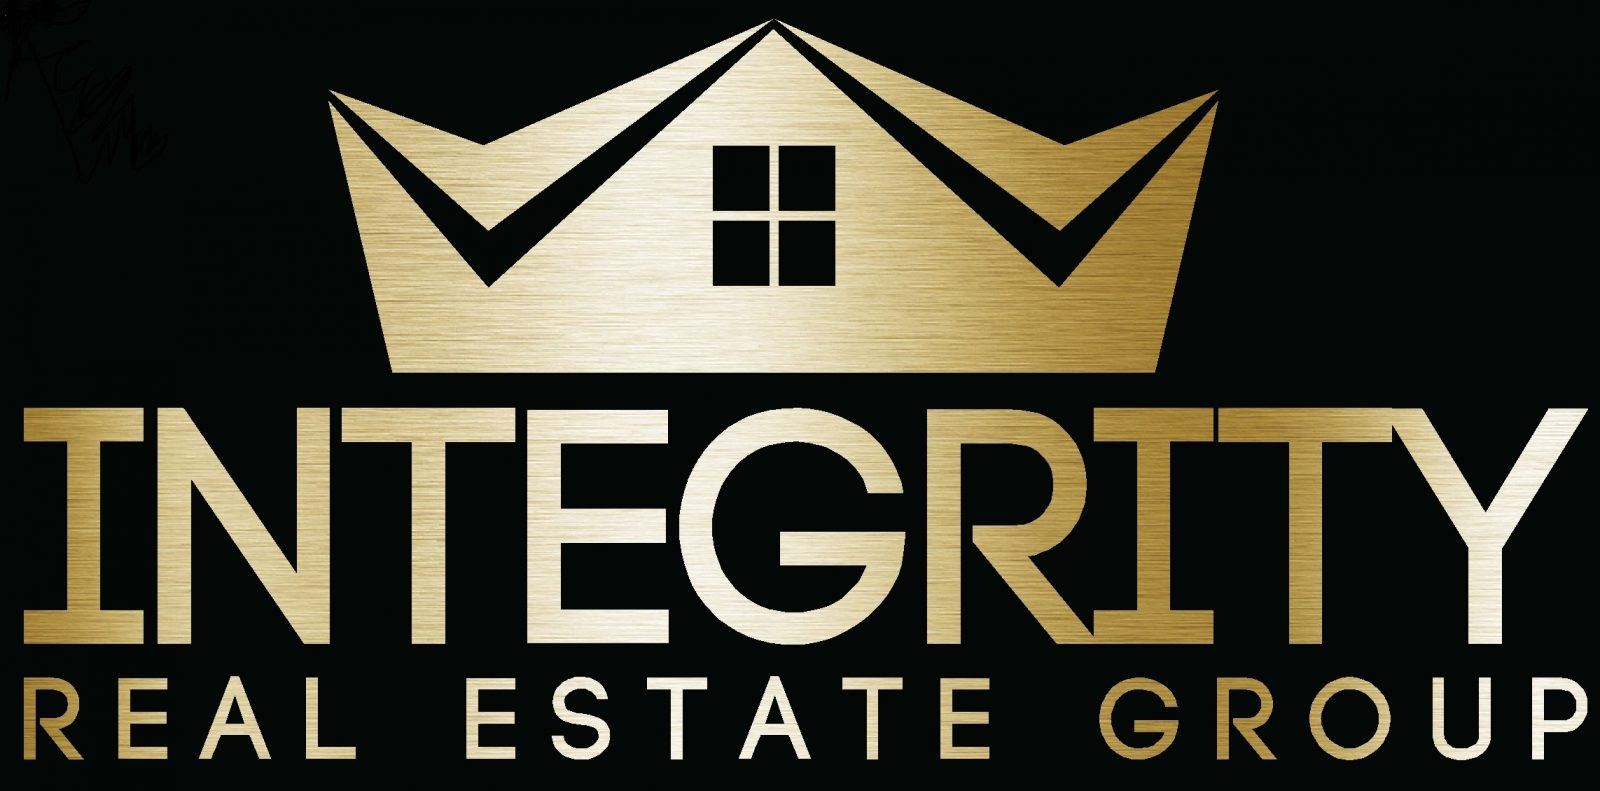 integrity-real-estate-group-odessa-tx-real-estate-image1.jpg